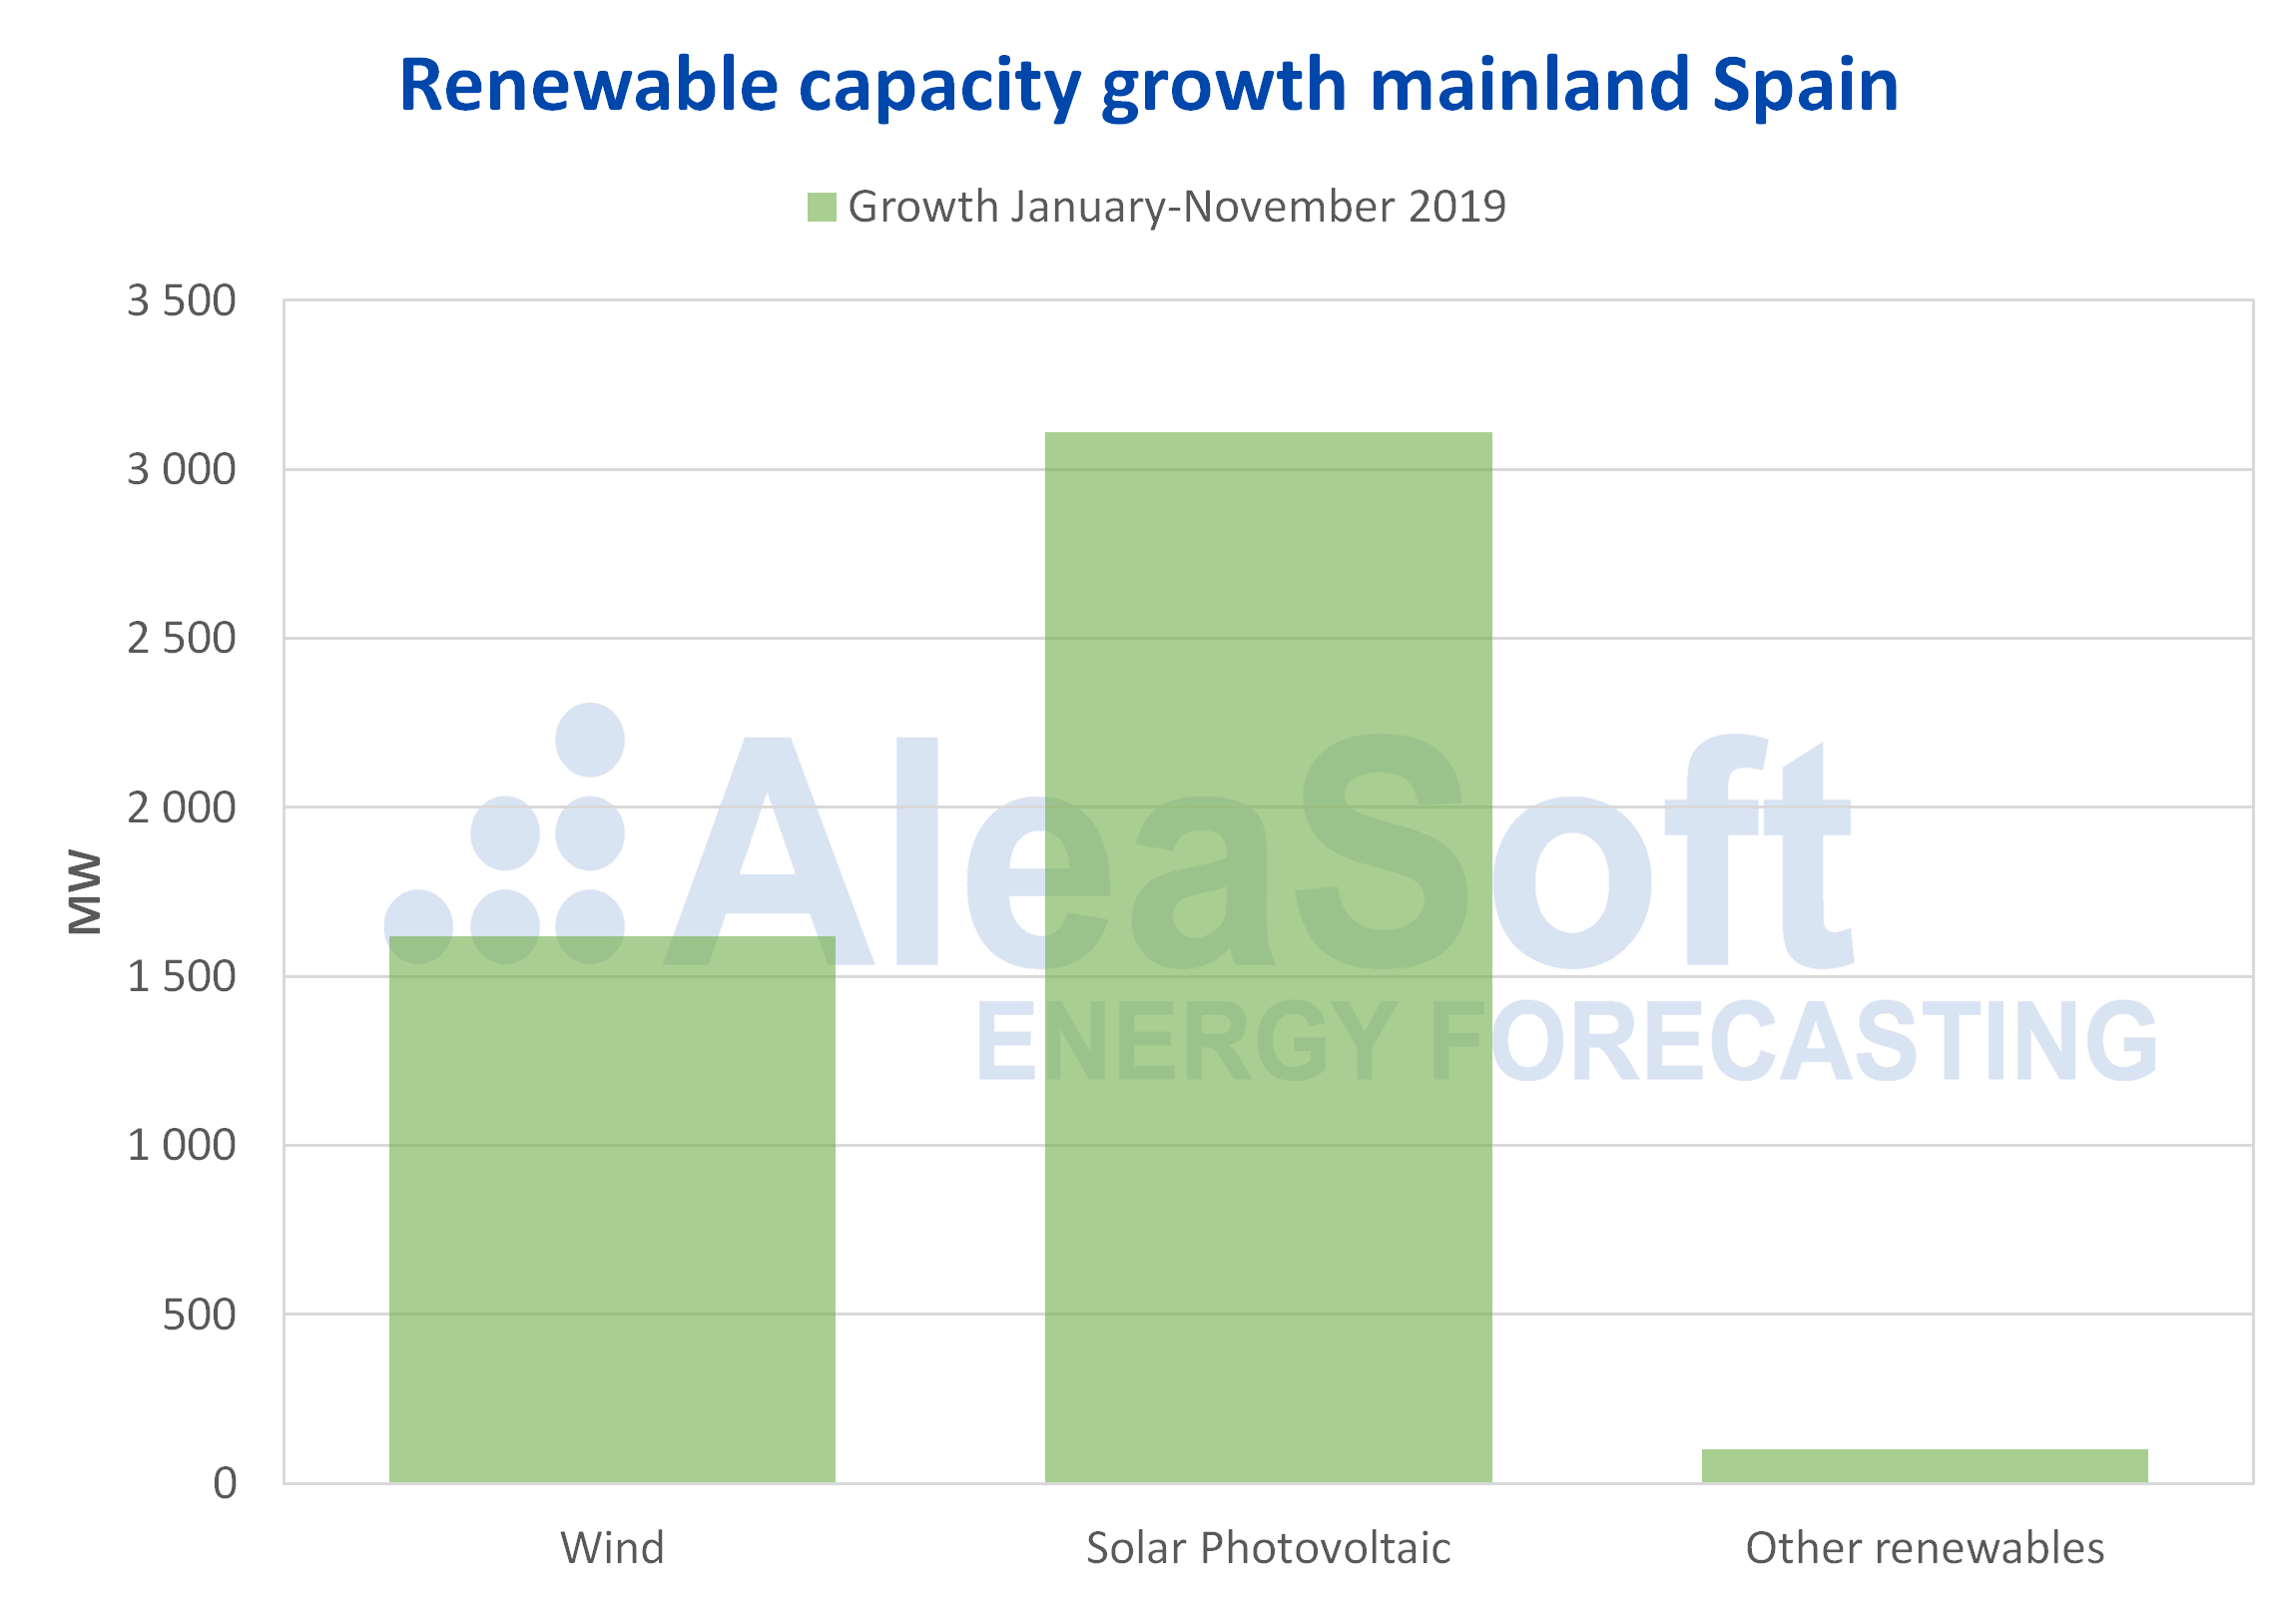 AleaSoft - Growth renewable capacity solar photovoltaic mainland Spain